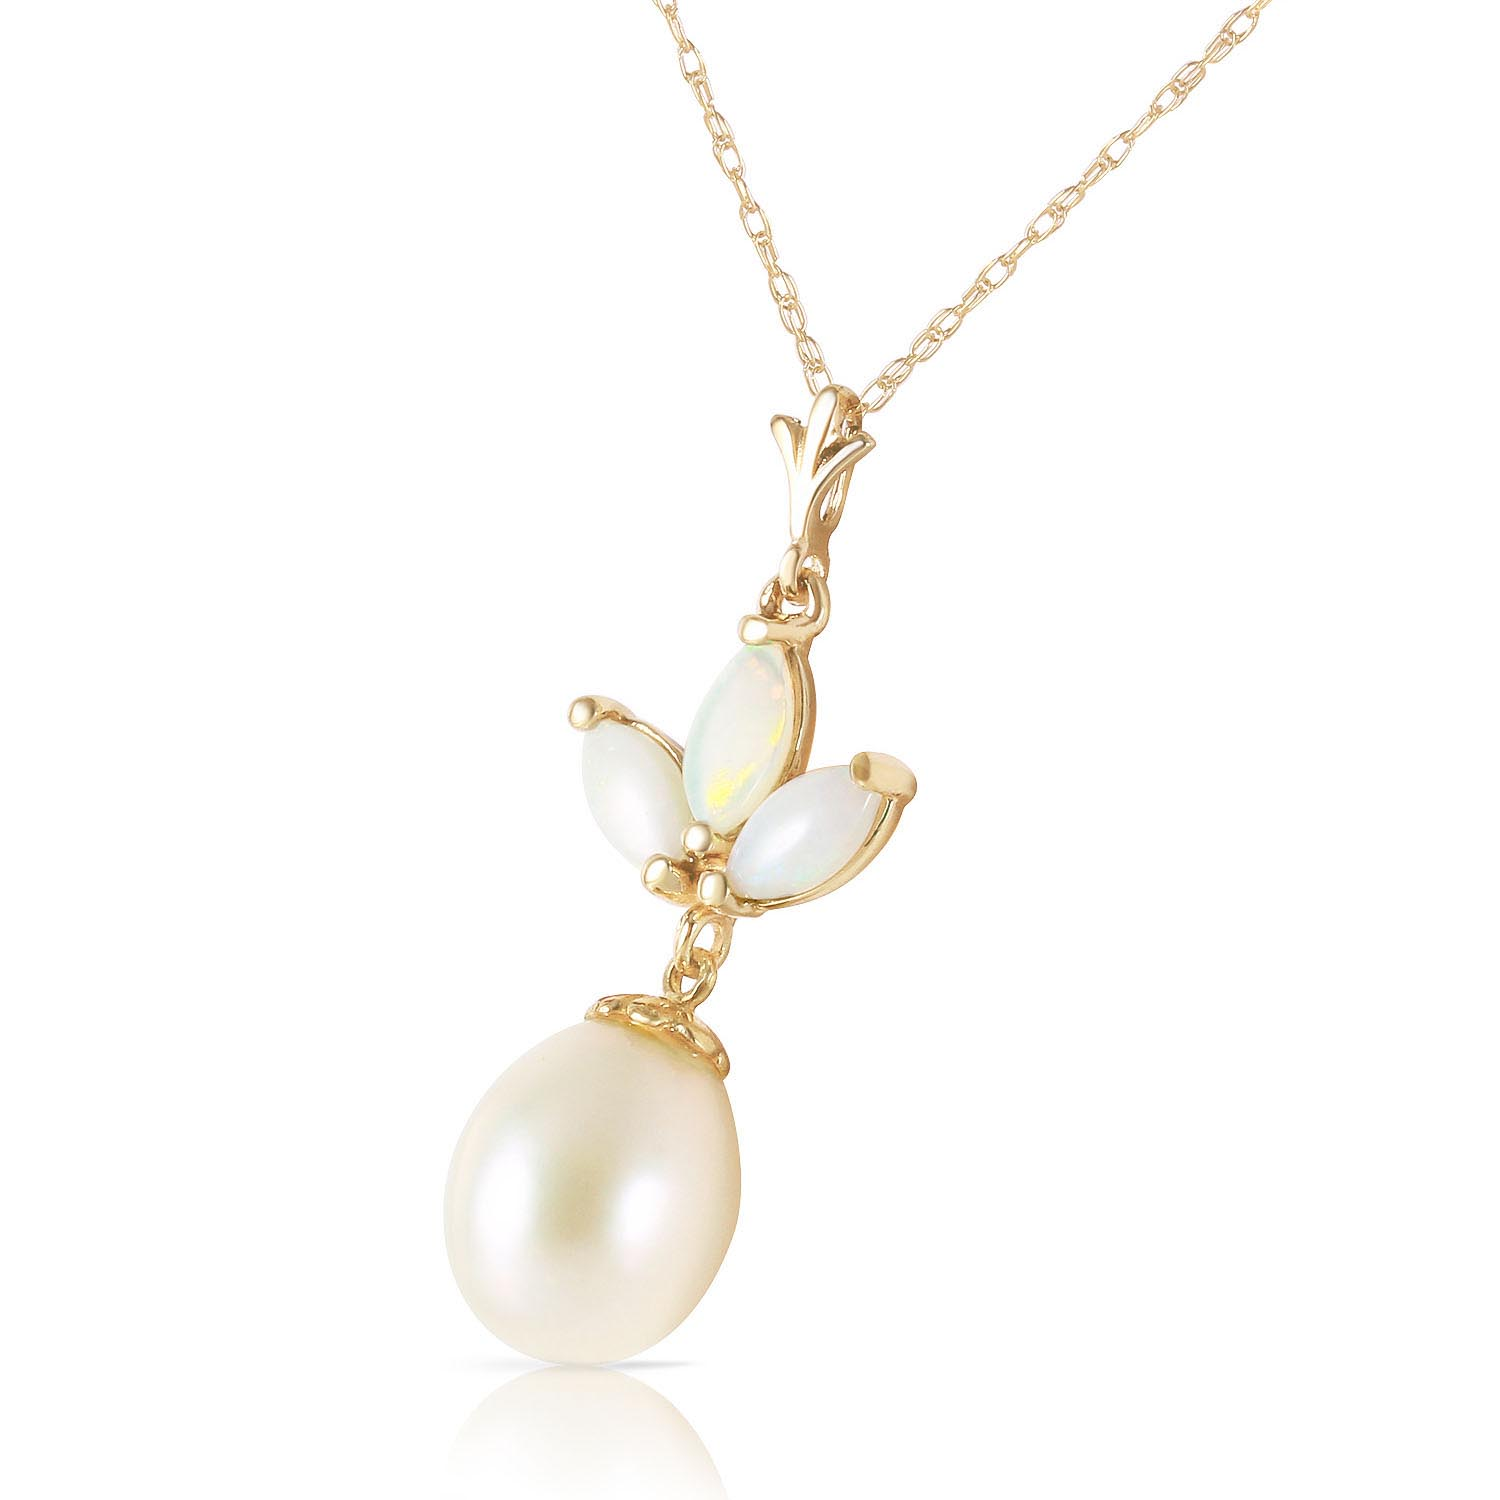 Pearl and Opal Petal Pendant Necklace 4.75ctw in 14K Gold